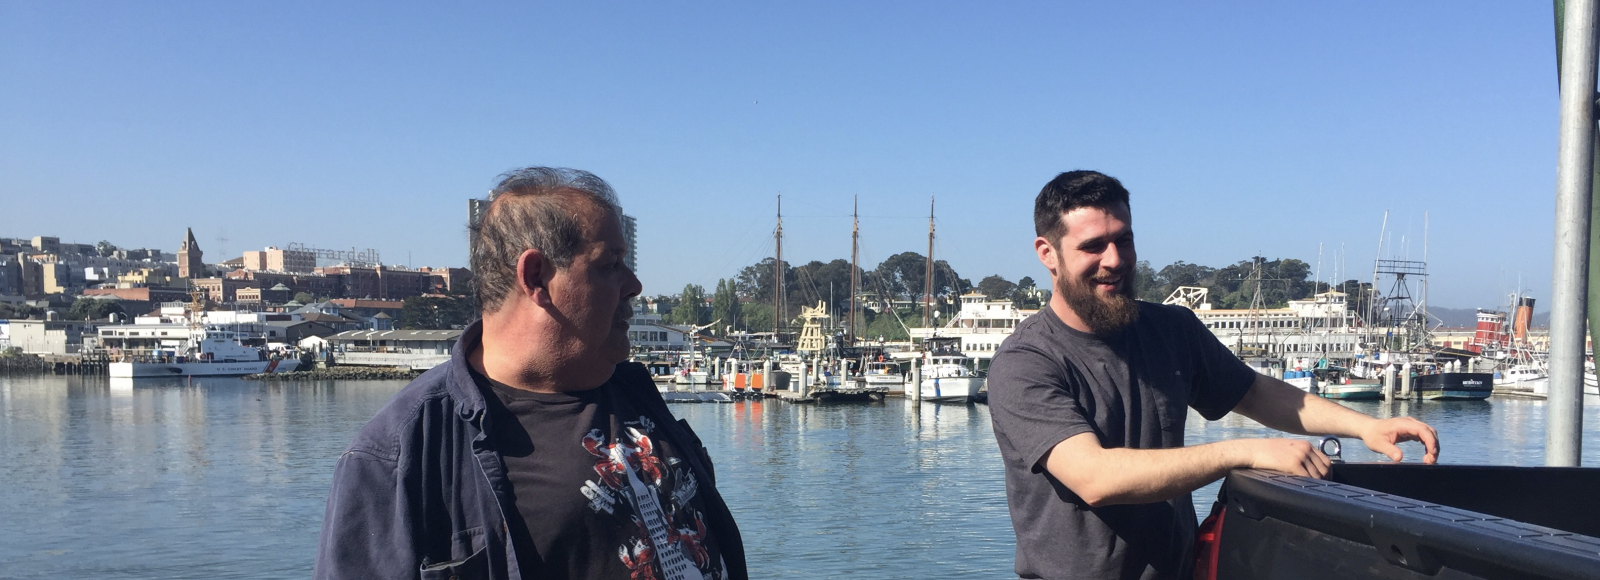 two men stand near bay